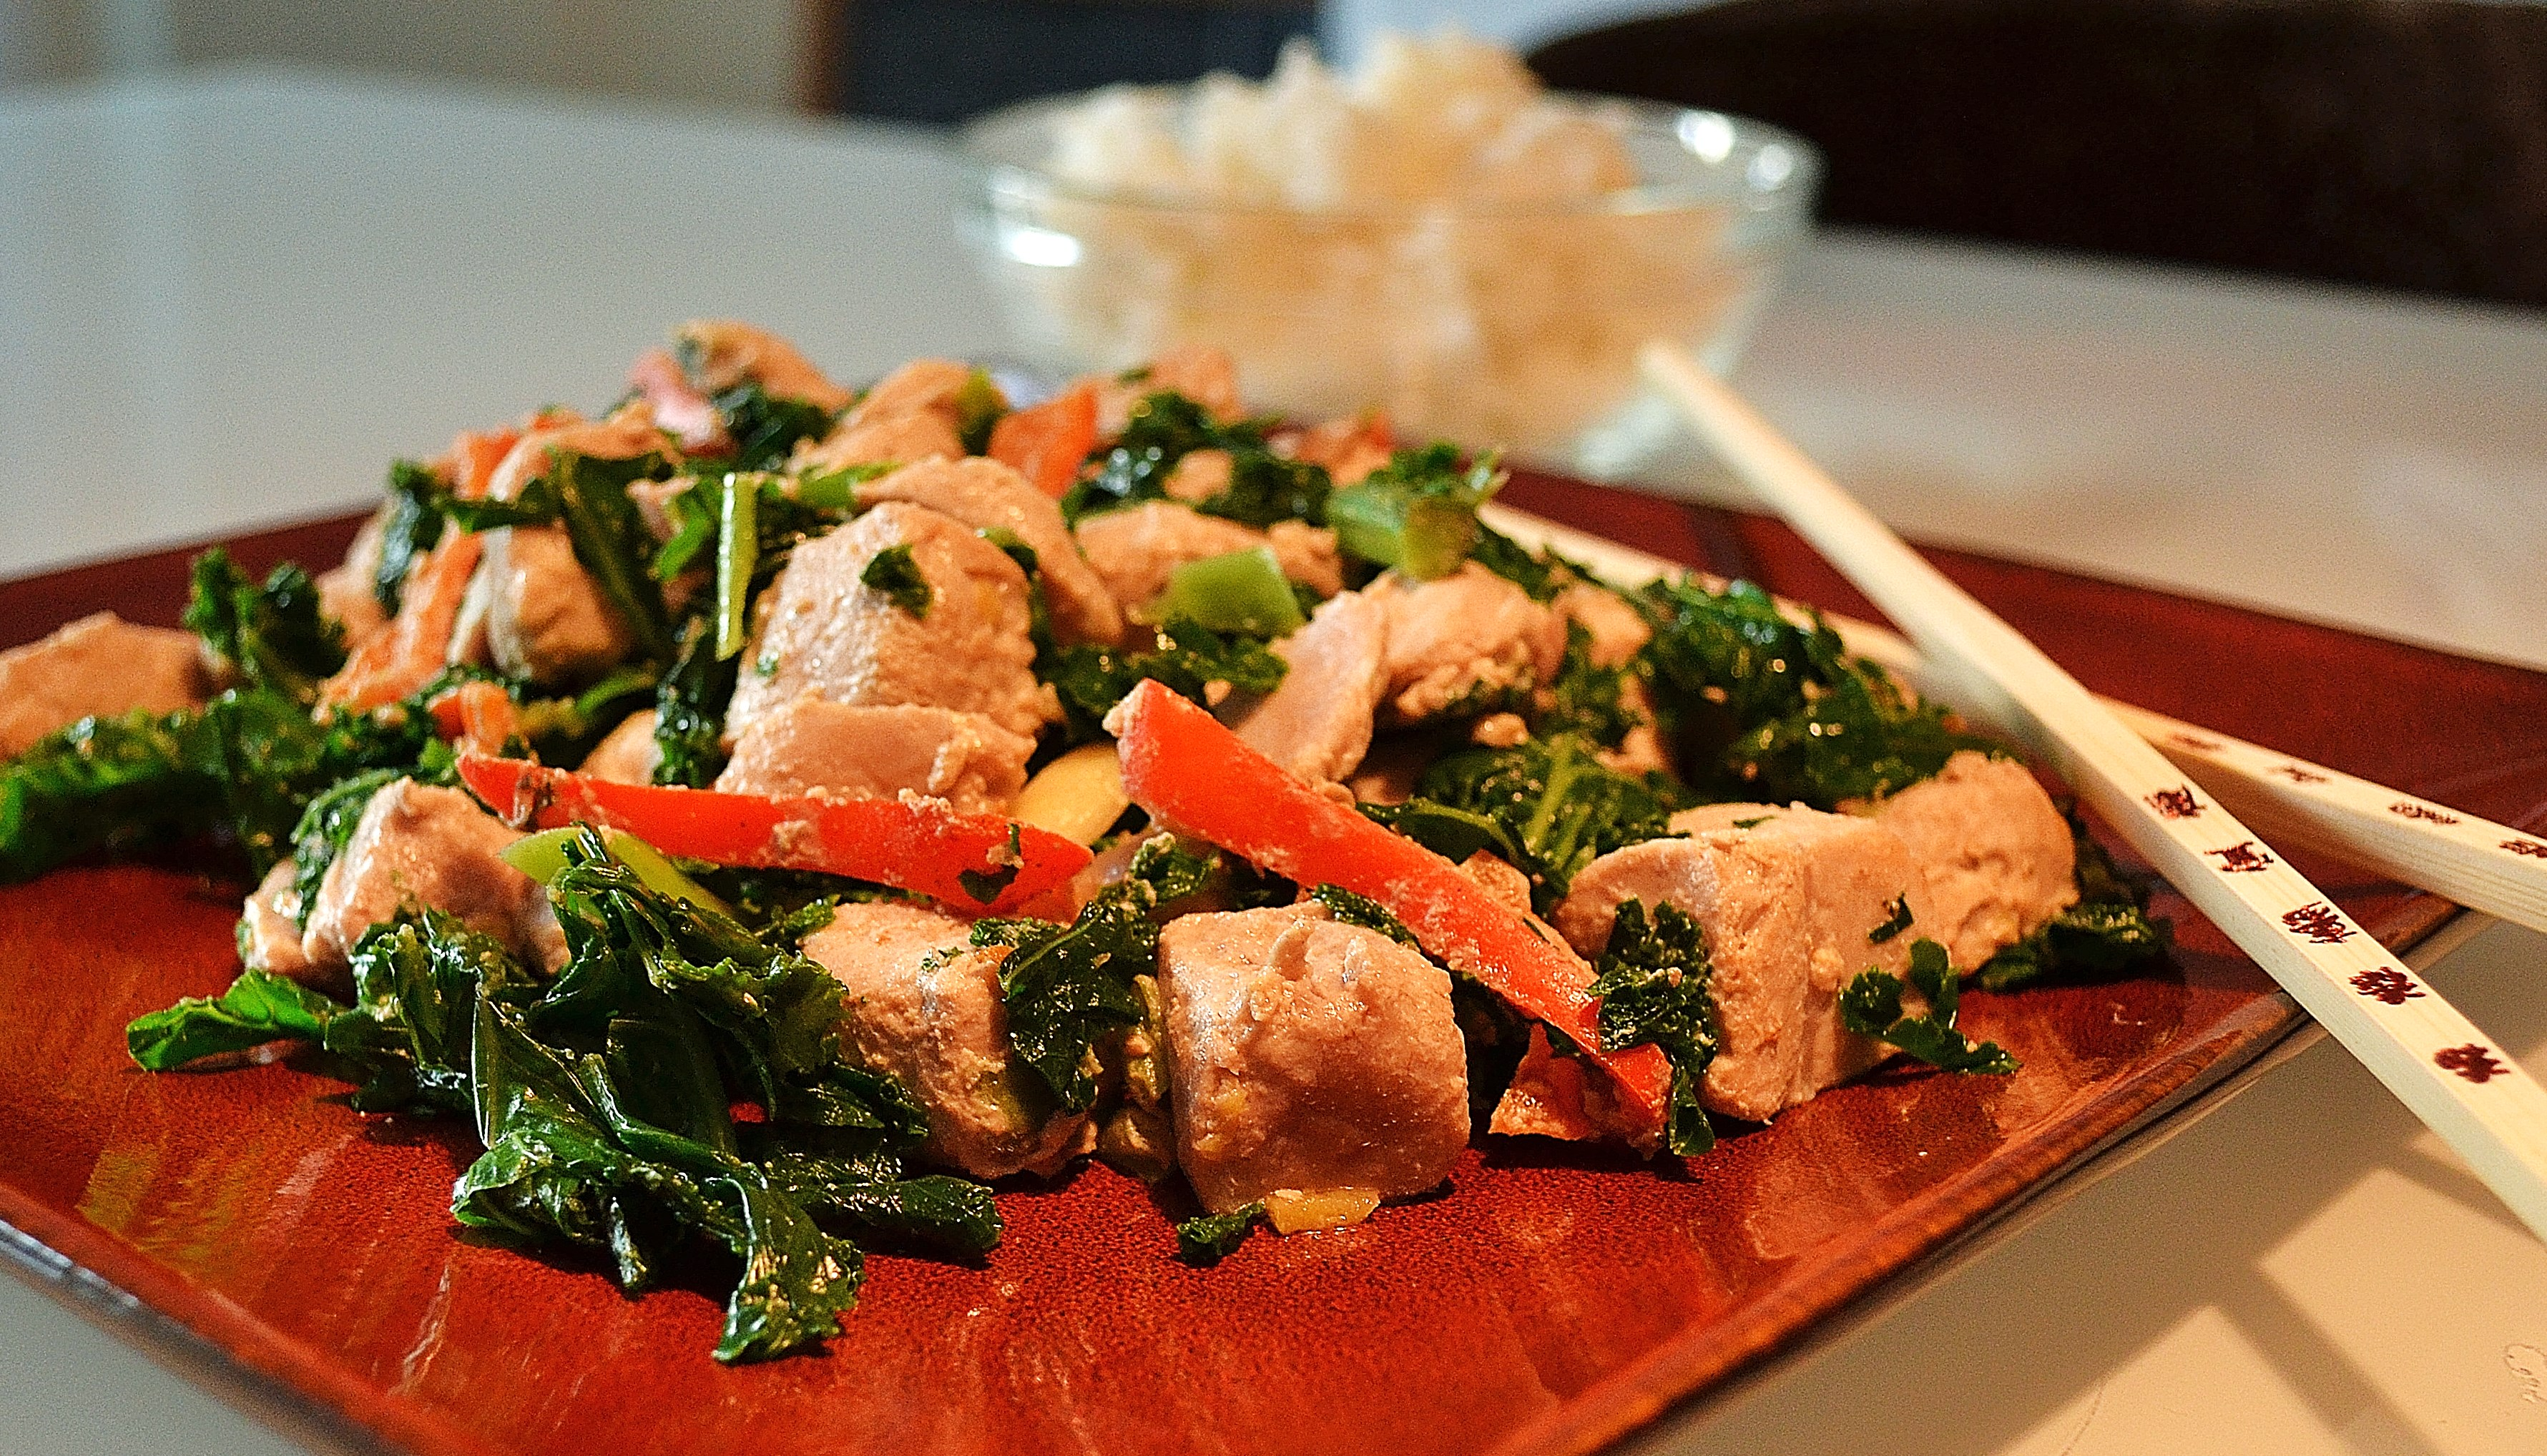 GINGERED TUNA AND GREENS STIR FRY